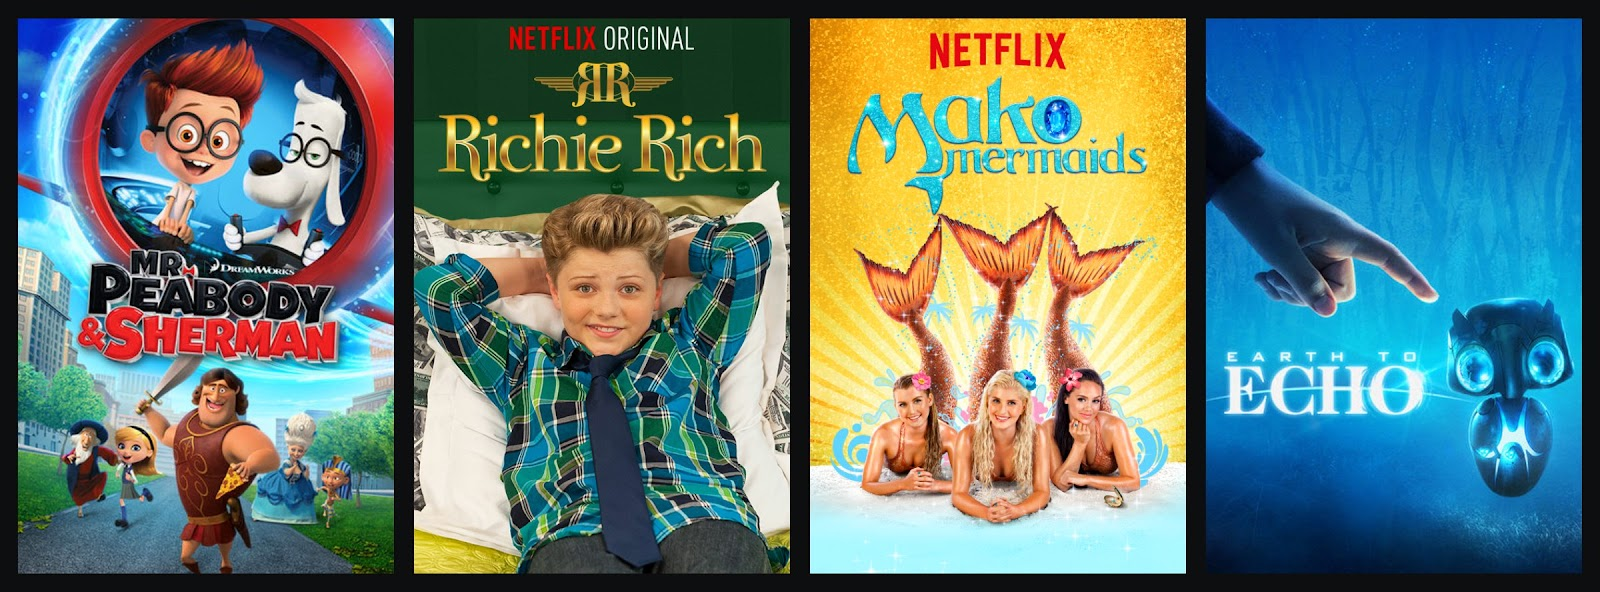 New to Netflix in February 2015